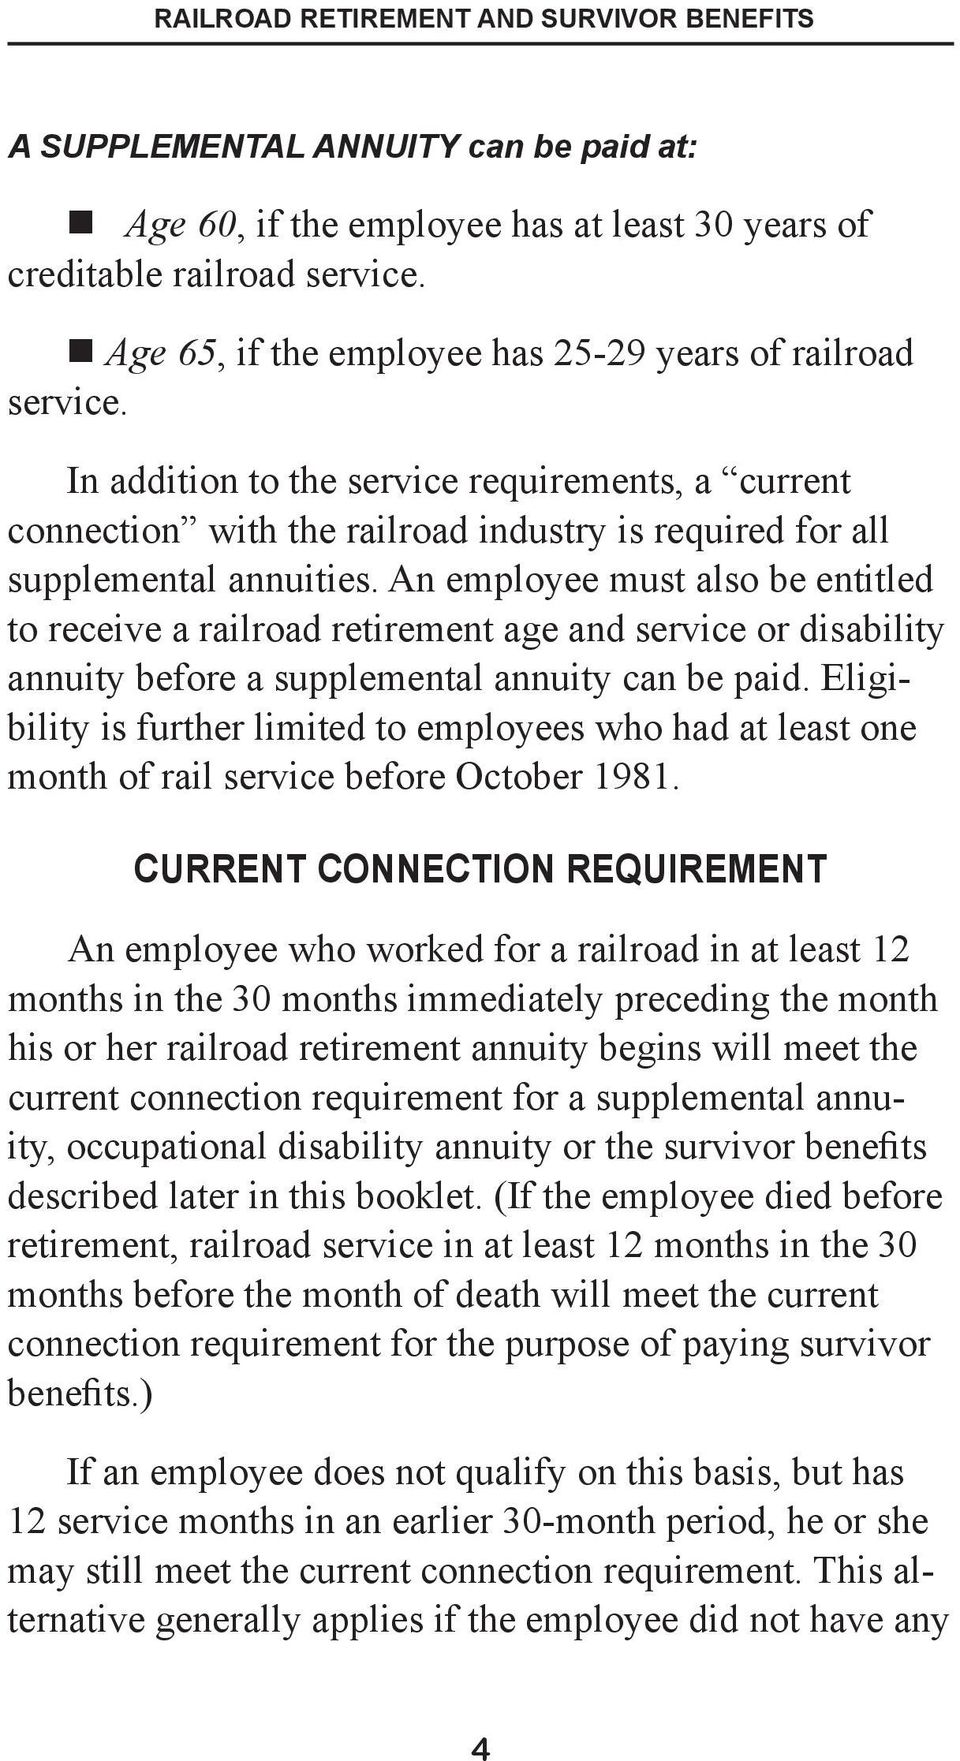 An employee must also be entitled to receive a railroad retirement age and service or disability annuity before a supplemental annuity can be paid.